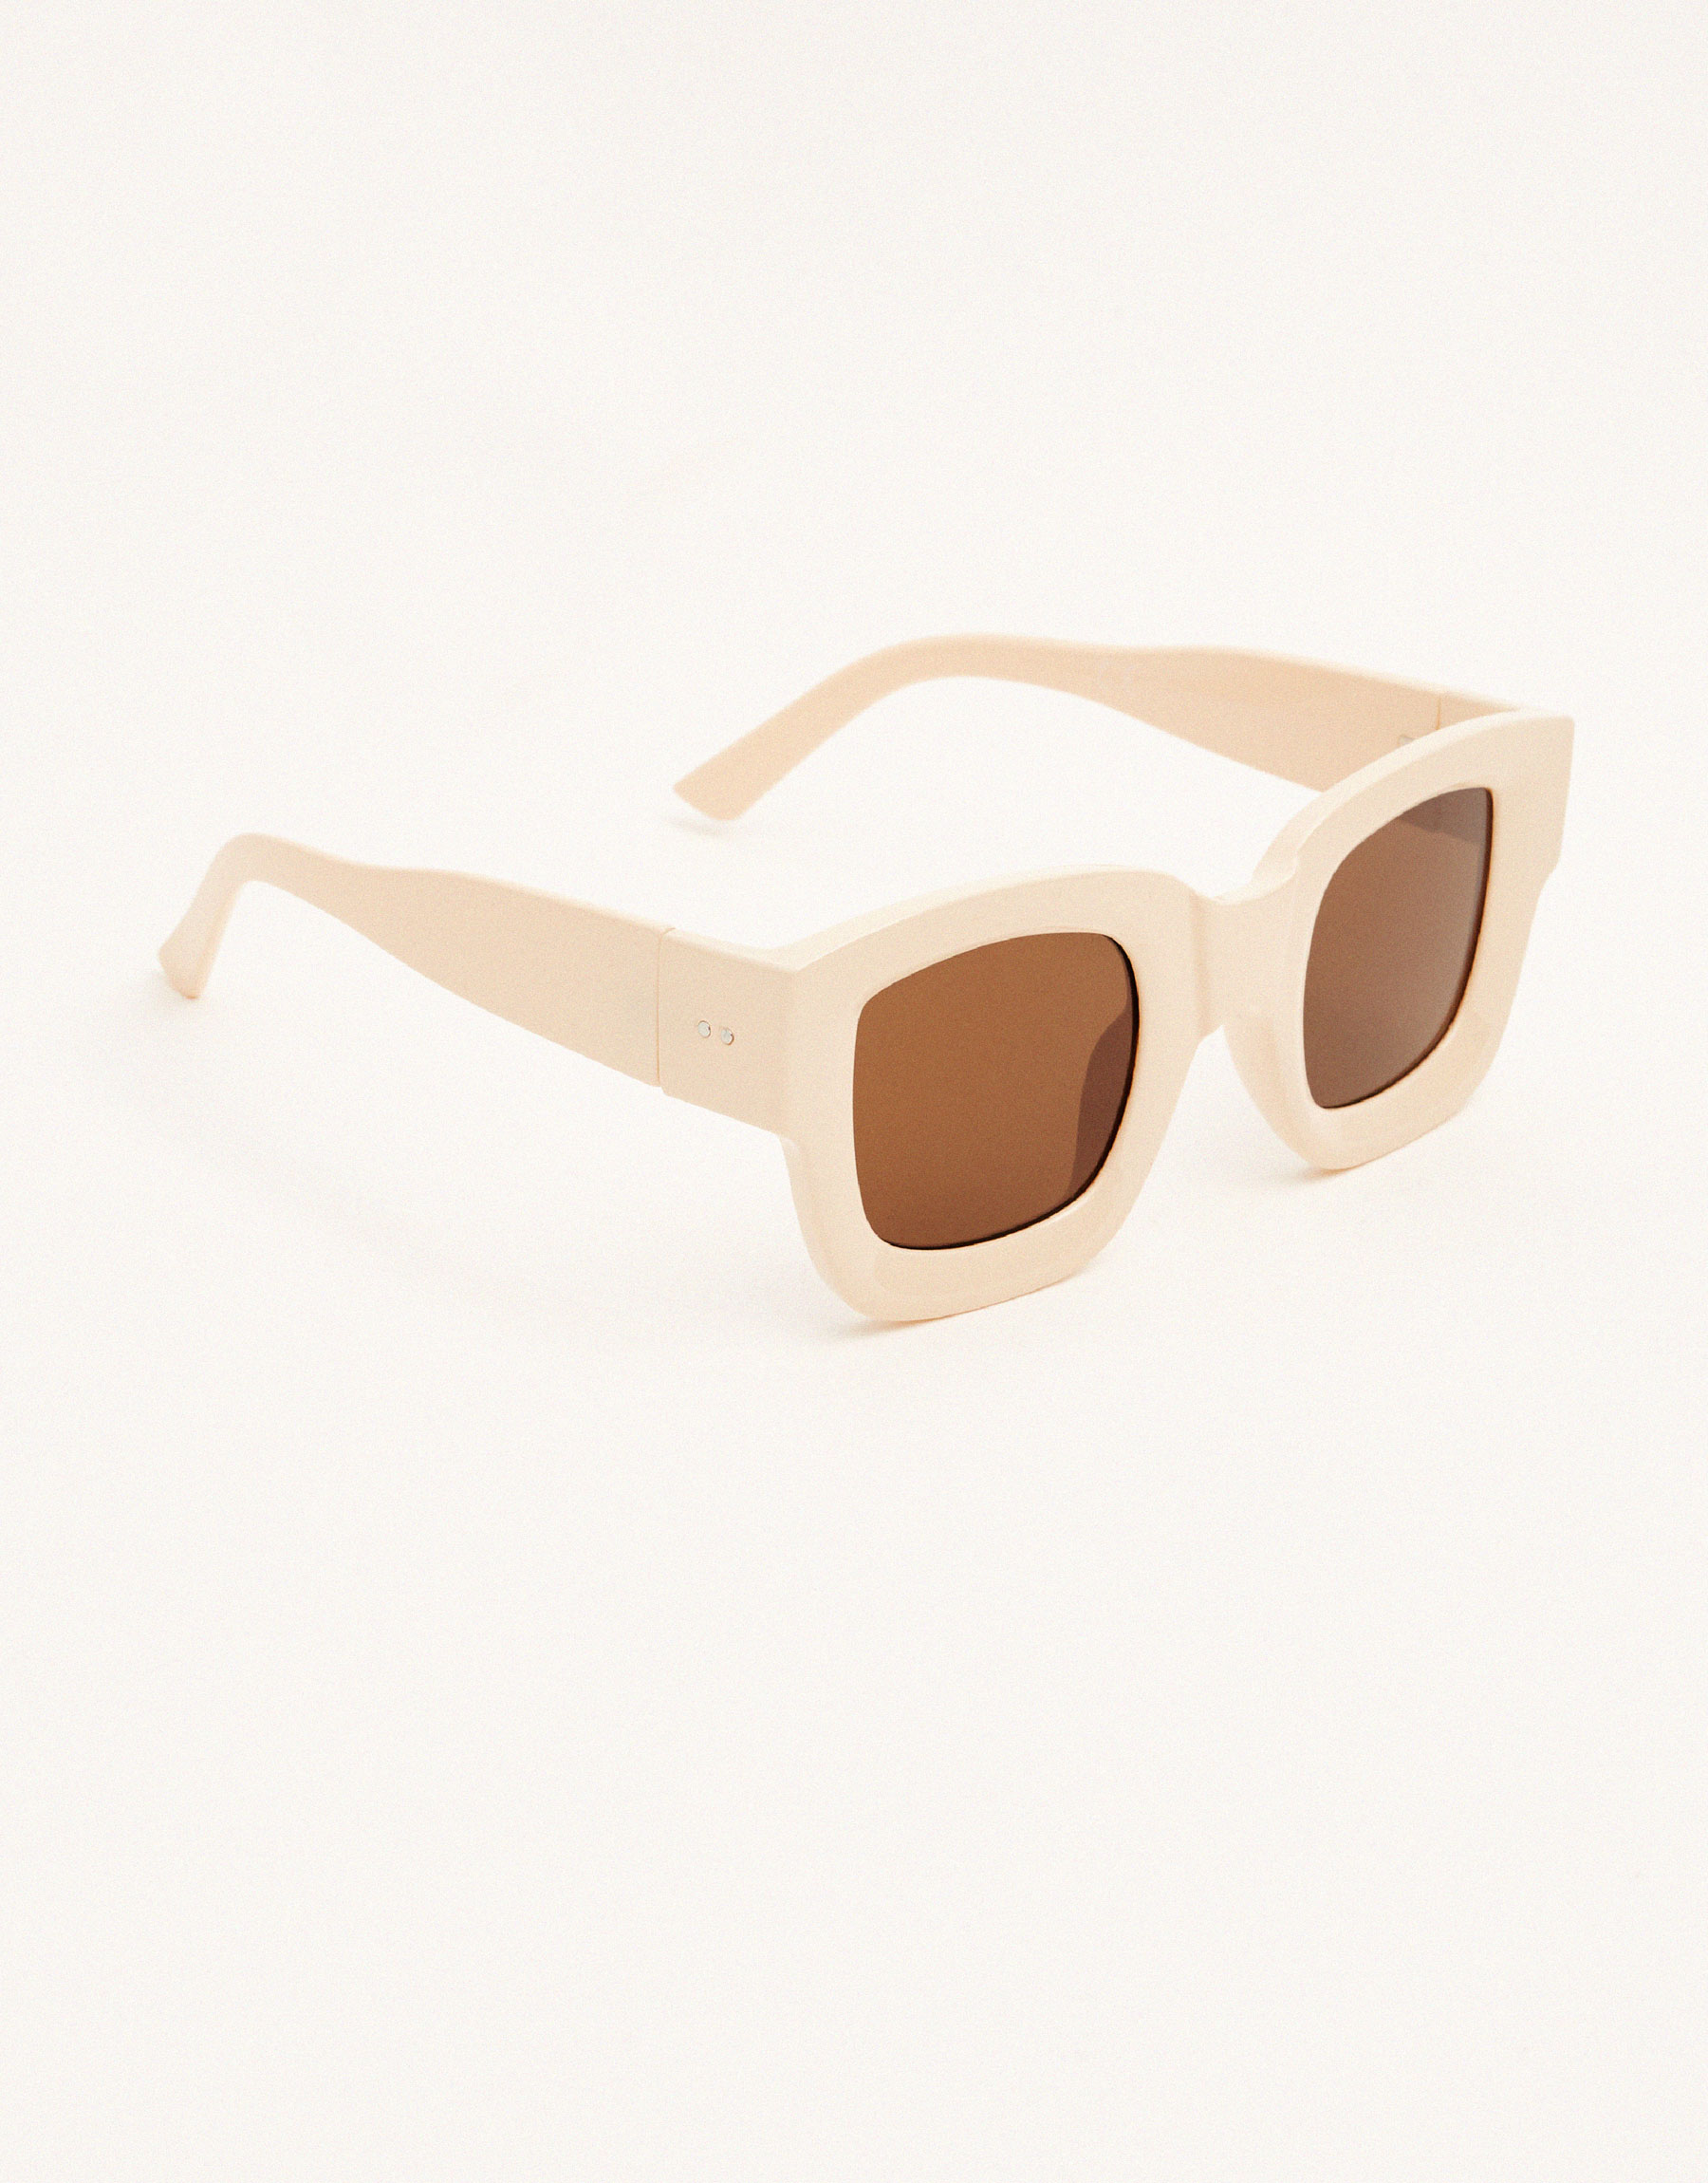 Square cream sunglasses